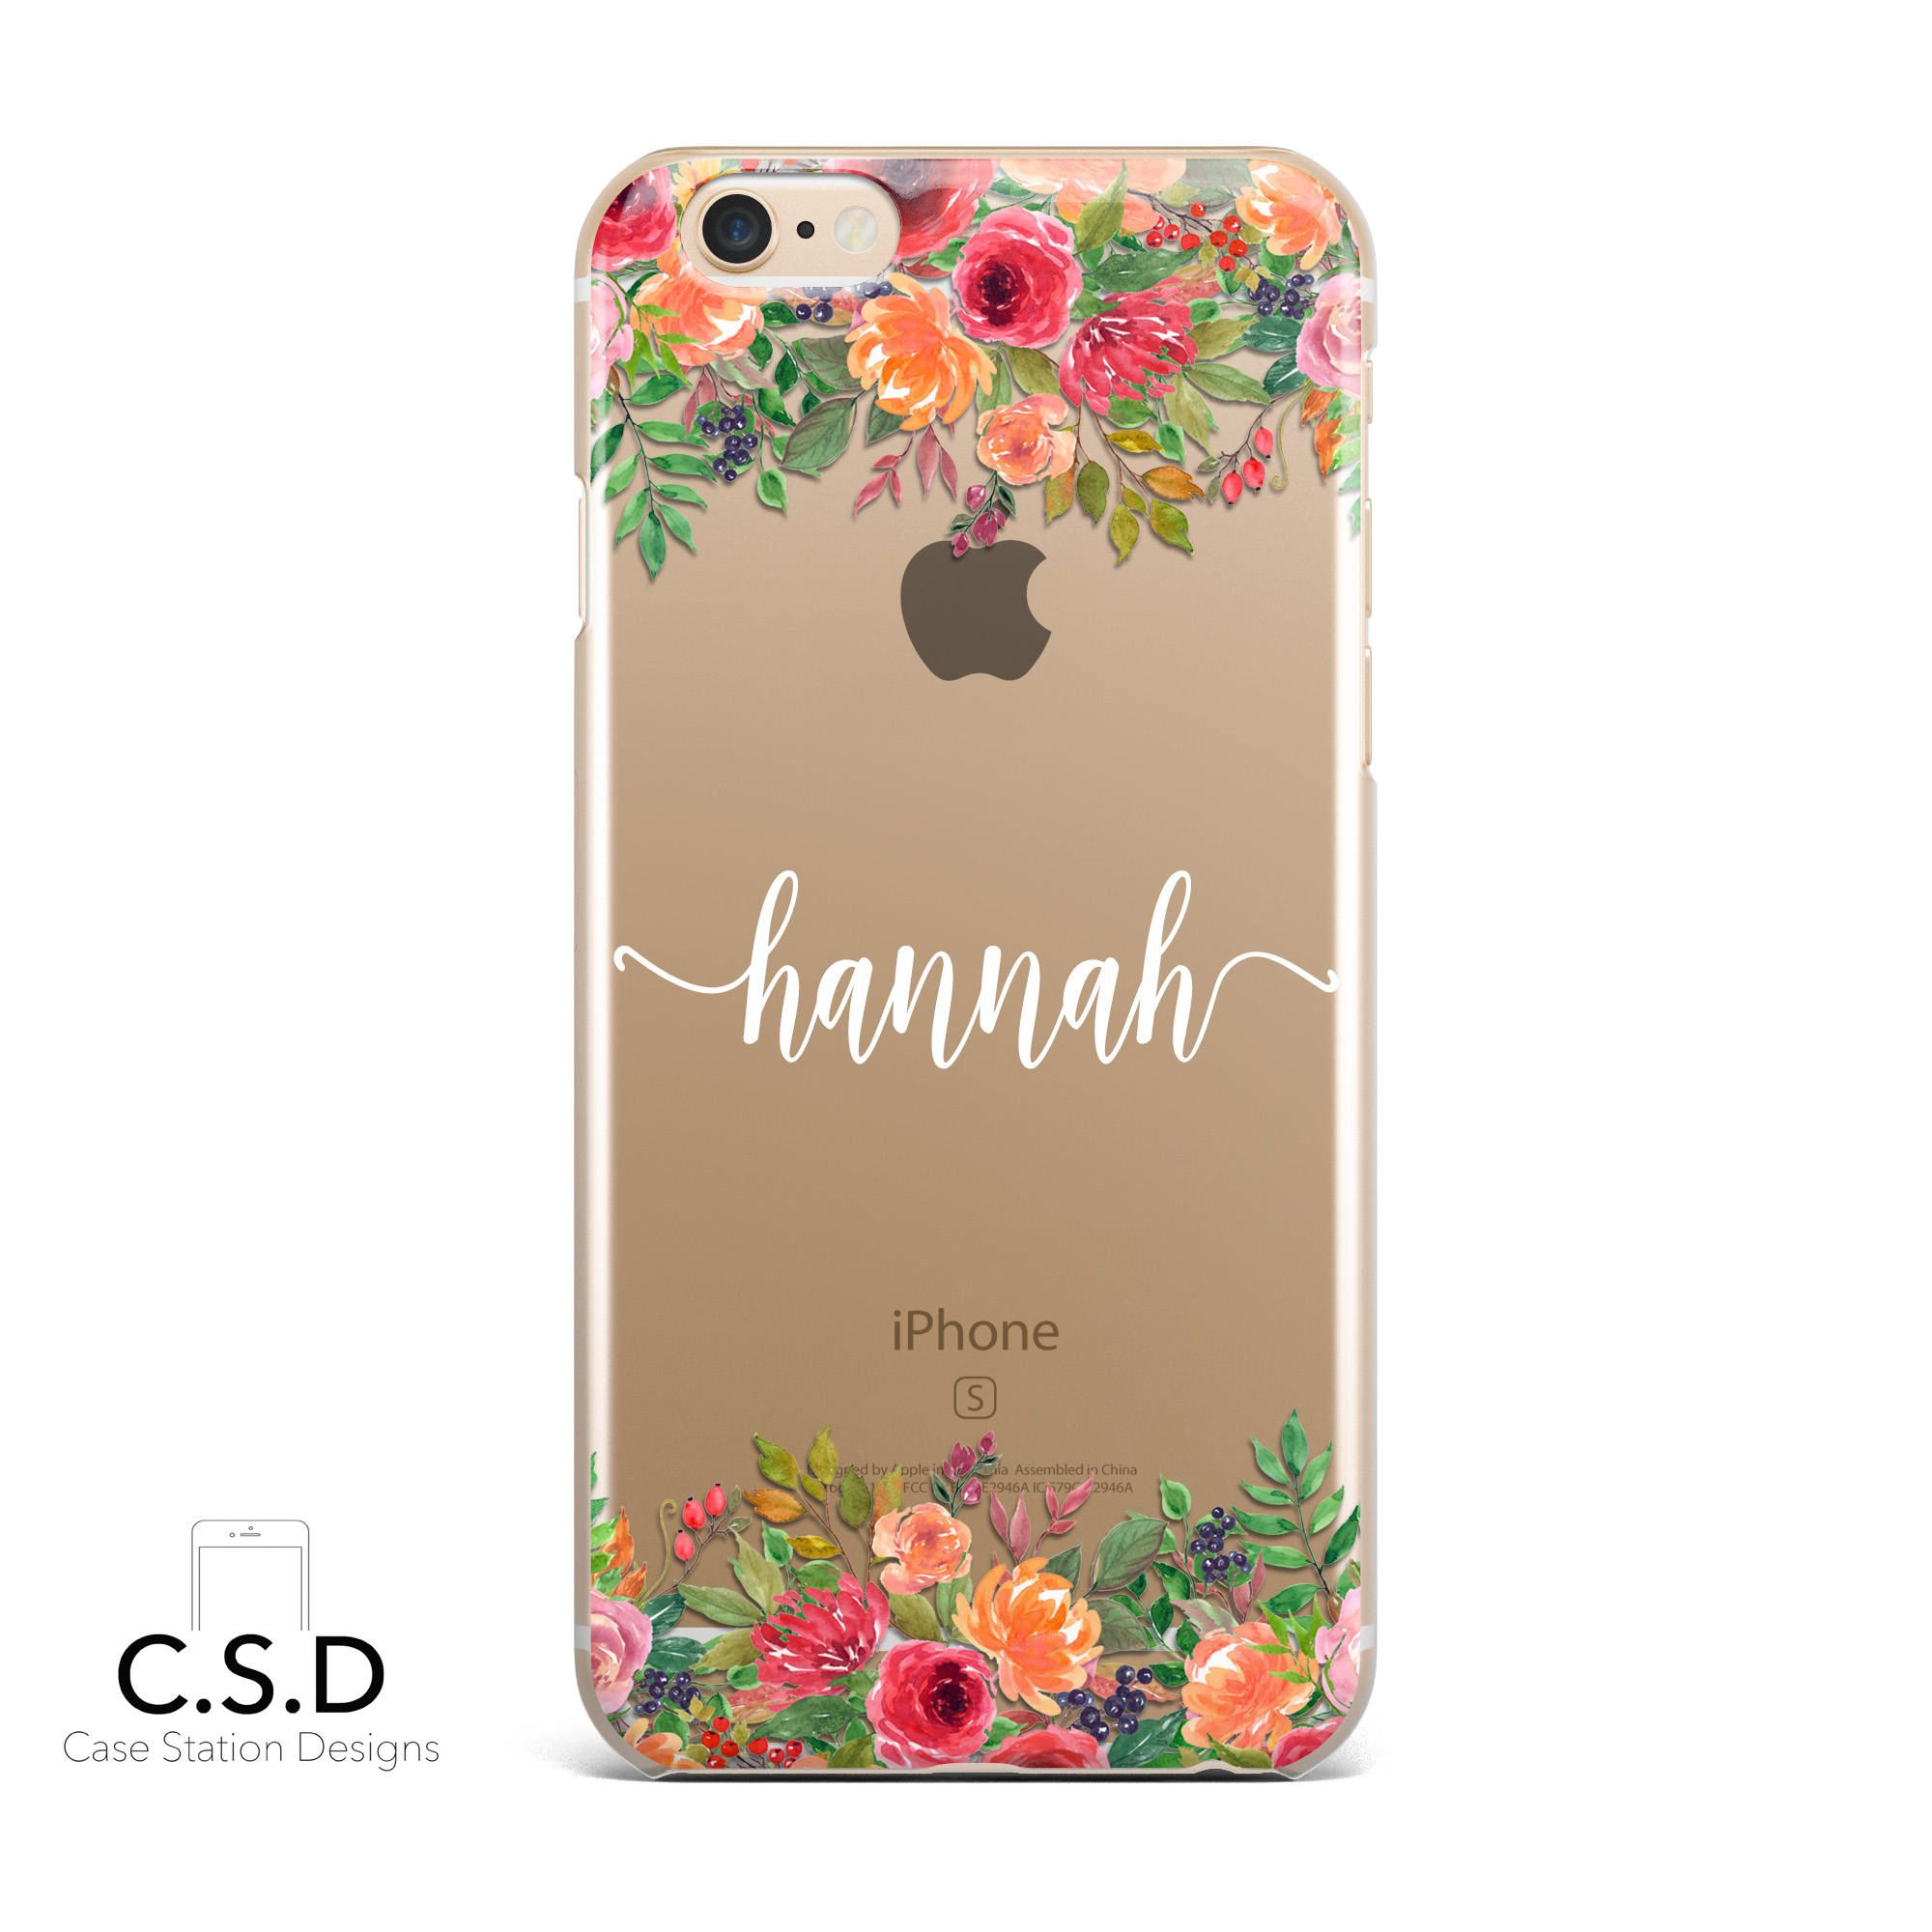 personalised name floral clear phone case for iphone x 8 plus 7, 6personalised name floral clear phone case for iphone x 8 plus 7, 6, 6s cell phone cover clear and frosted transparent by casestationdesigns on etsy